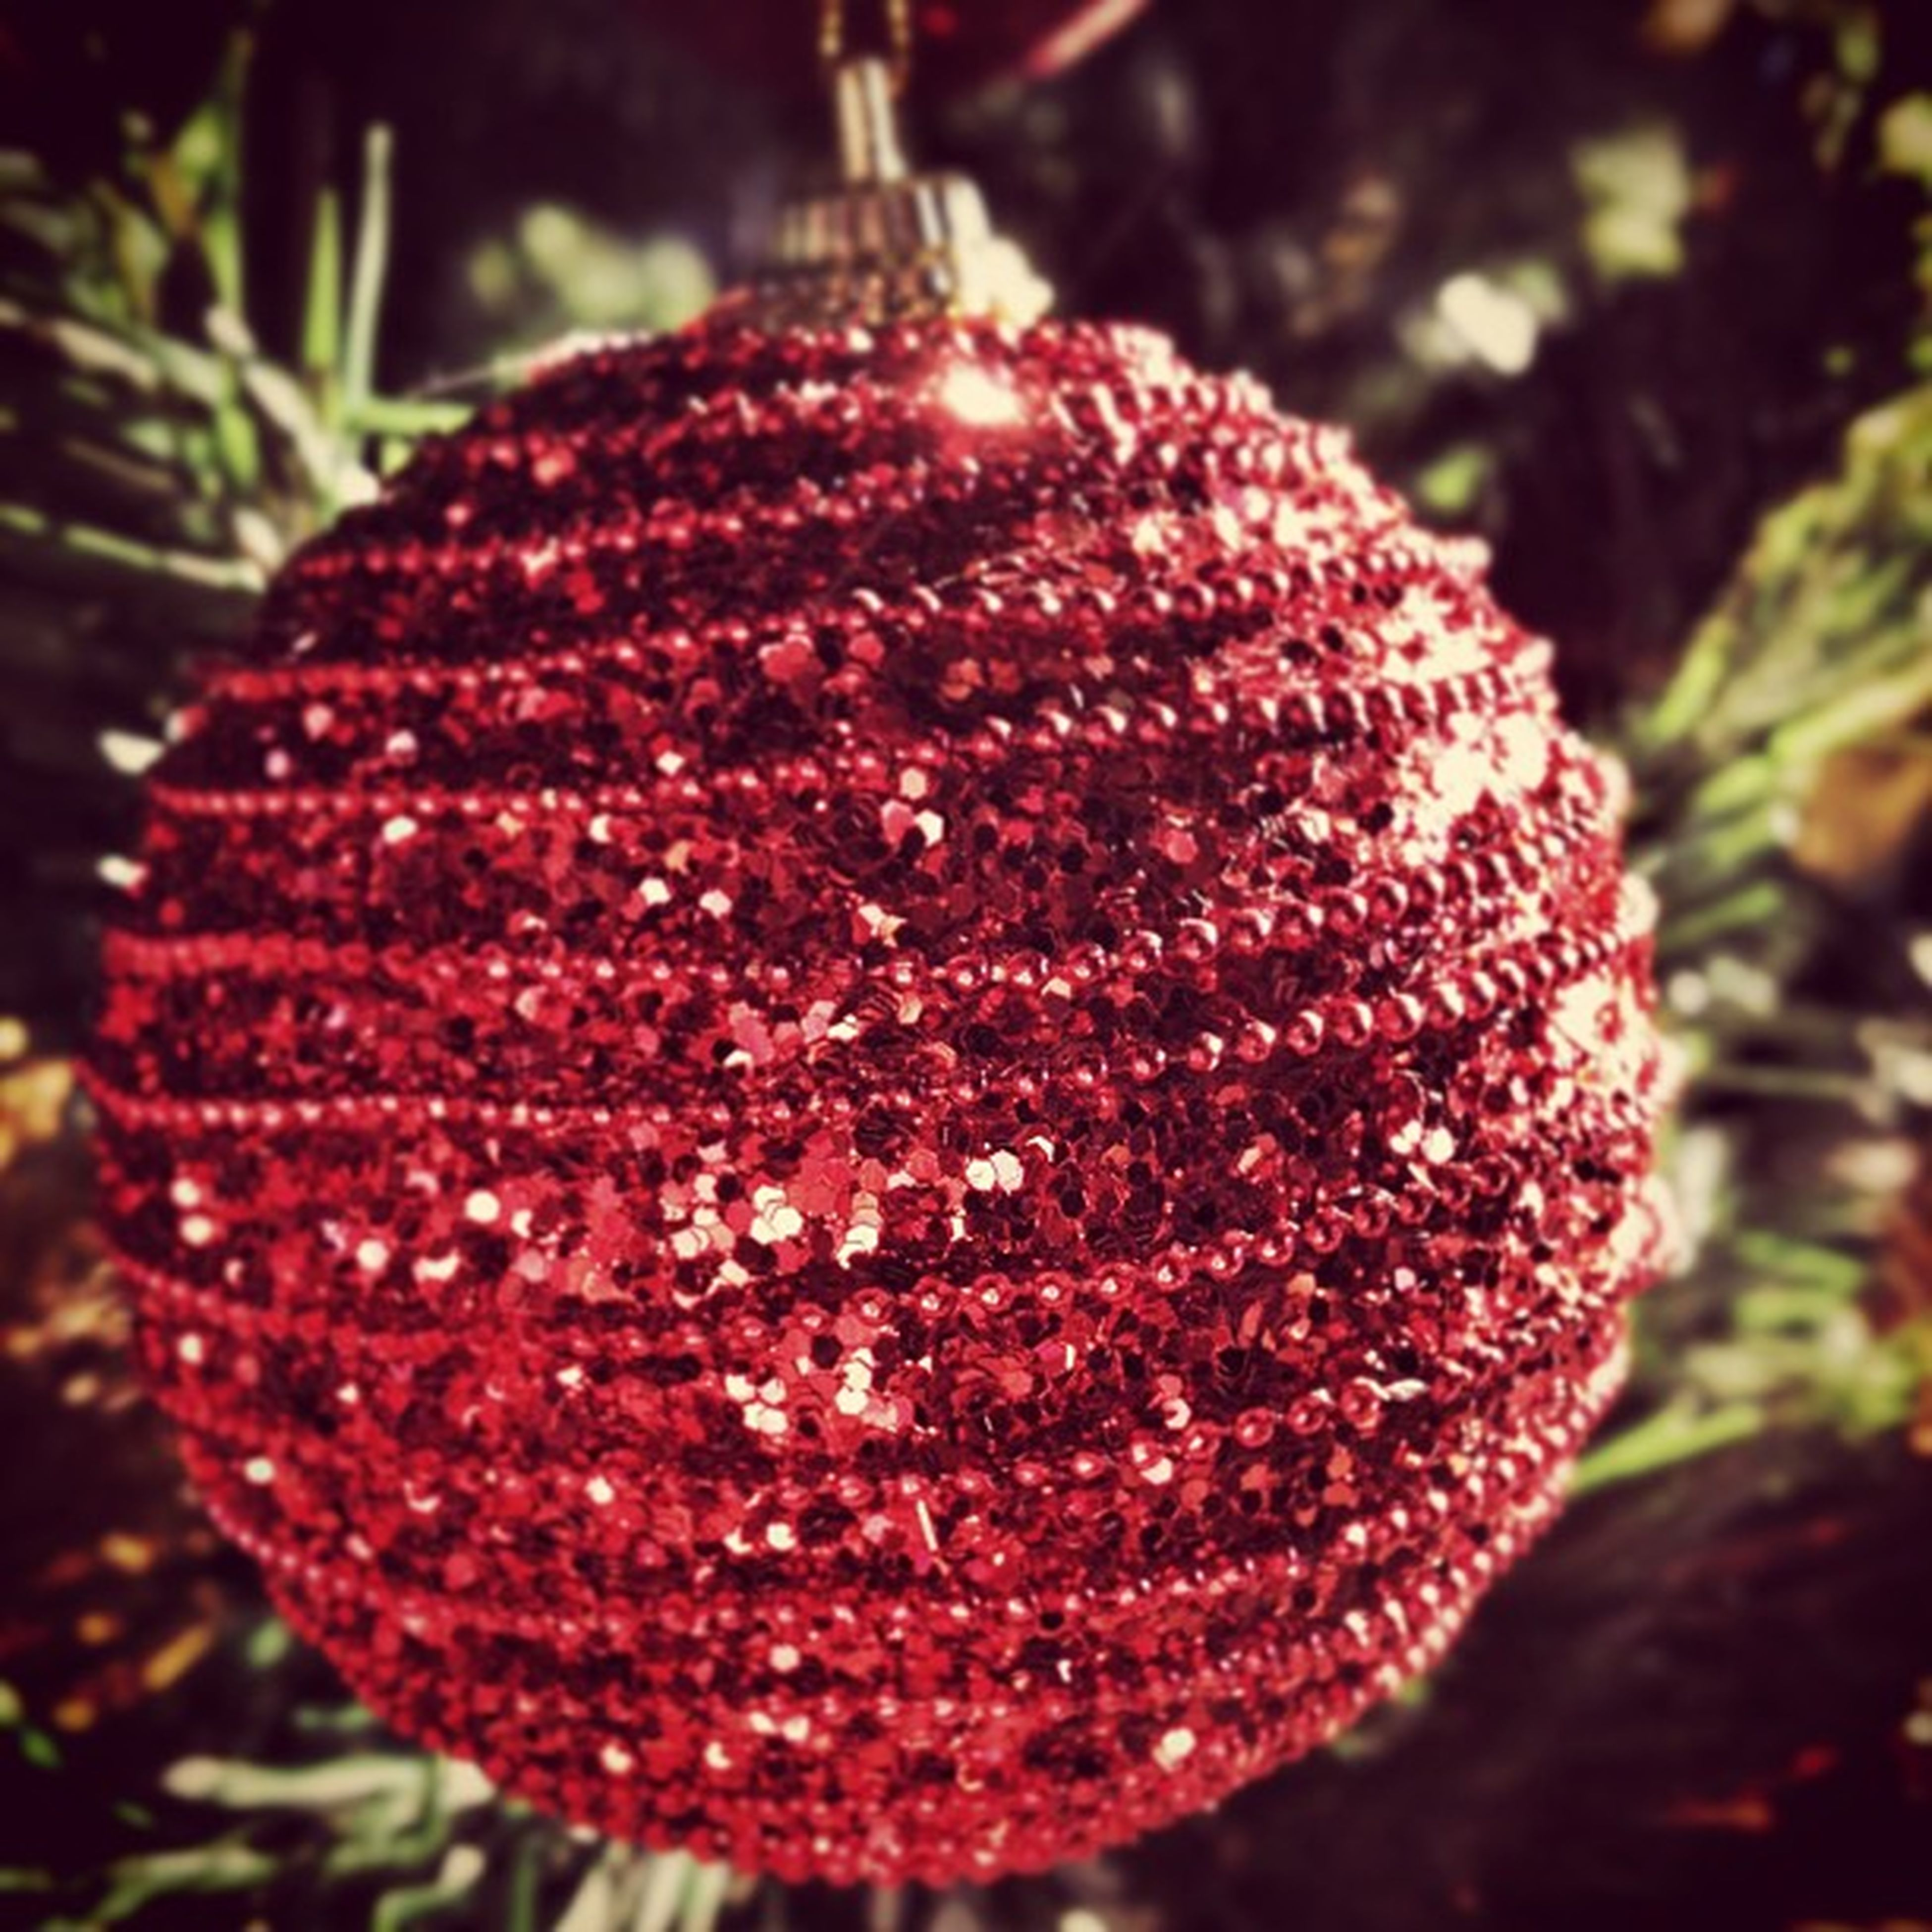 red, close-up, focus on foreground, food and drink, freshness, selective focus, hanging, tradition, food, fungus, no people, outdoors, mushroom, growth, christmas, nature, day, tree, fruit, christmas decoration